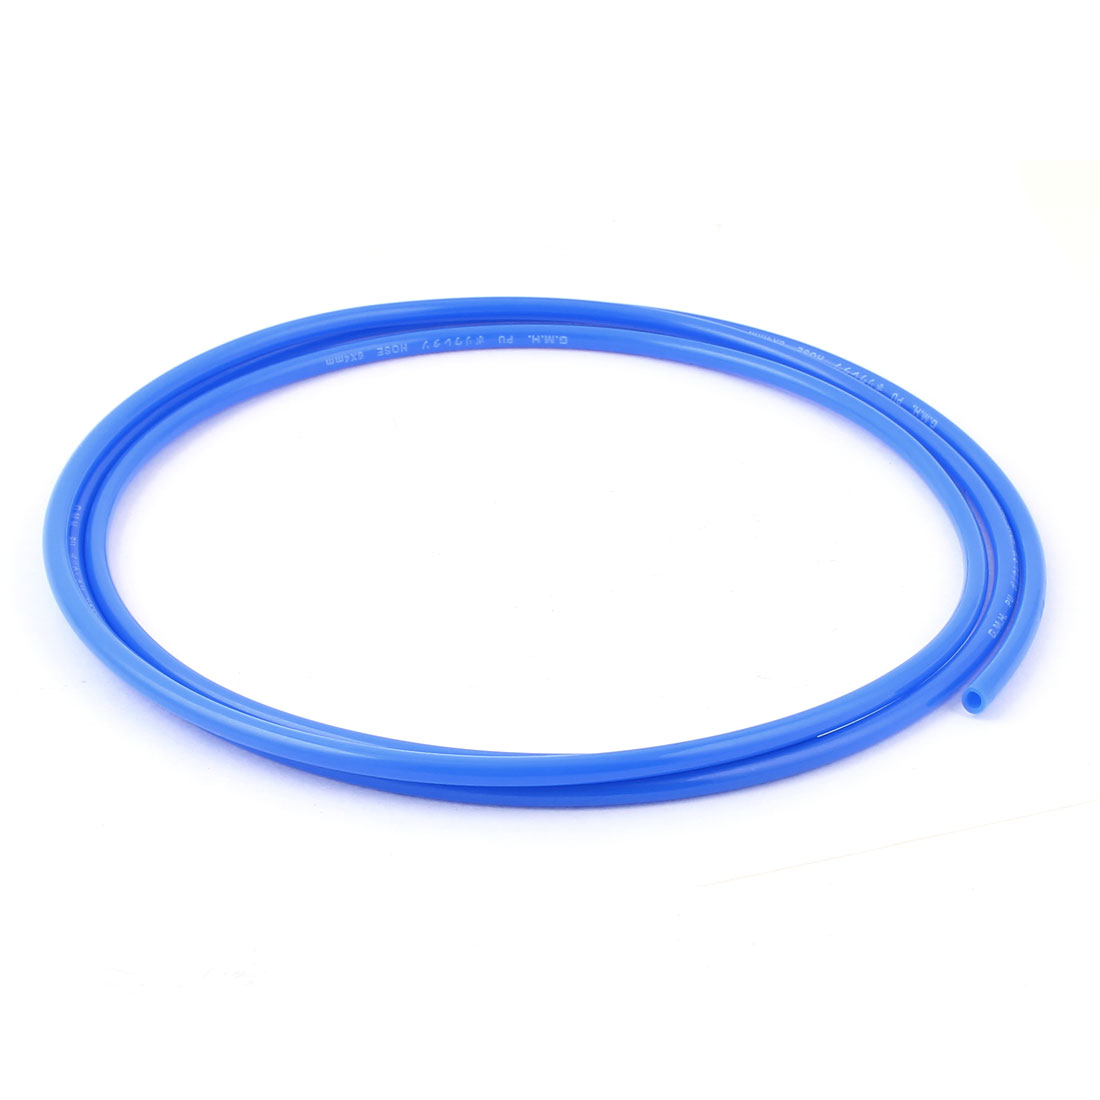 Polyurethane PU Pneumatic Air Tubing Pipe Hose 6mm x 4mm x 2M Blue